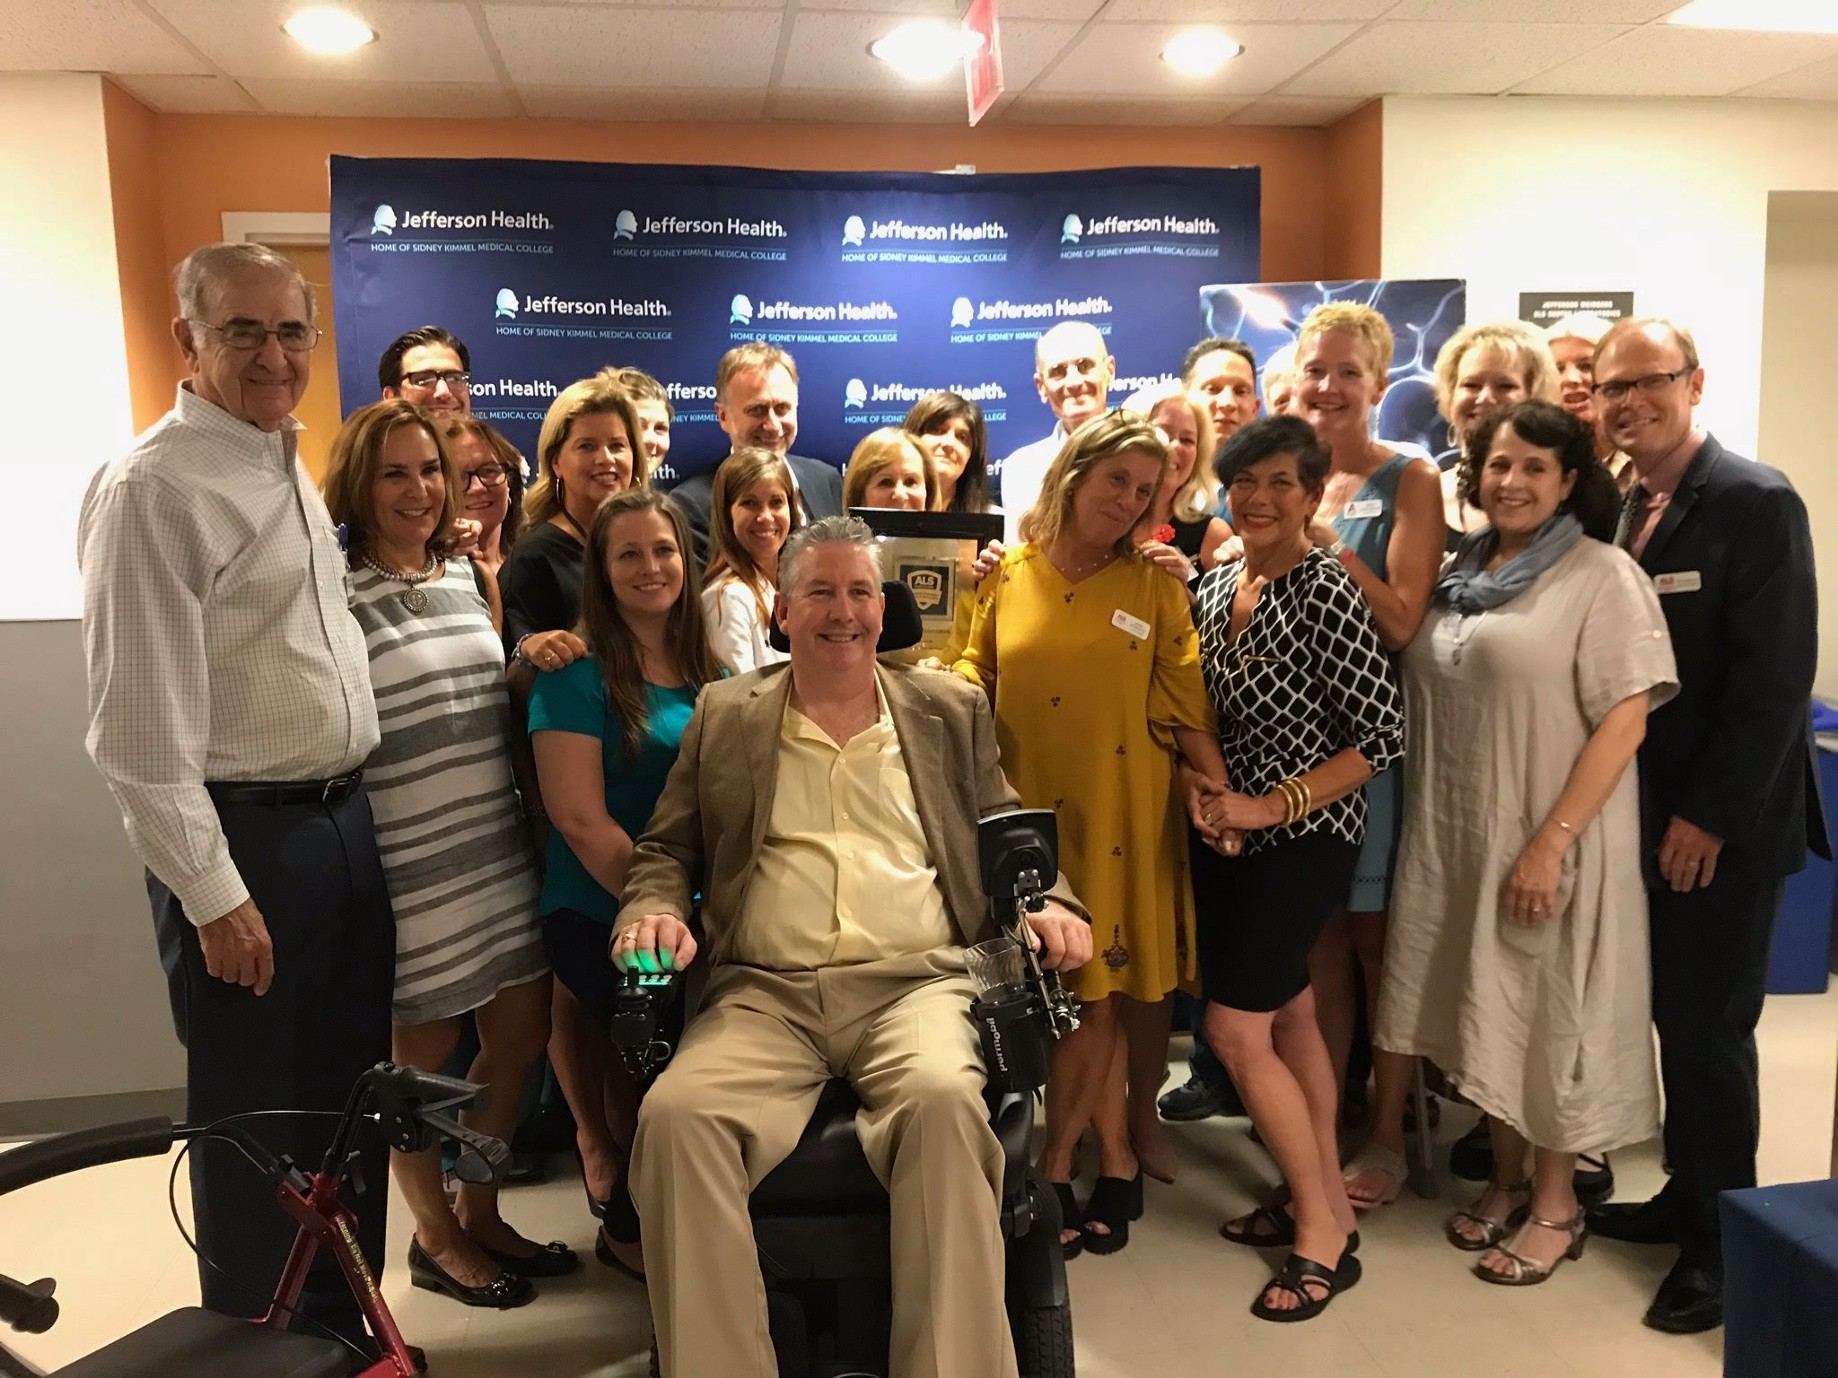 Milestone: Recognizing The Jefferson Weinberg ALS Center as an ALS